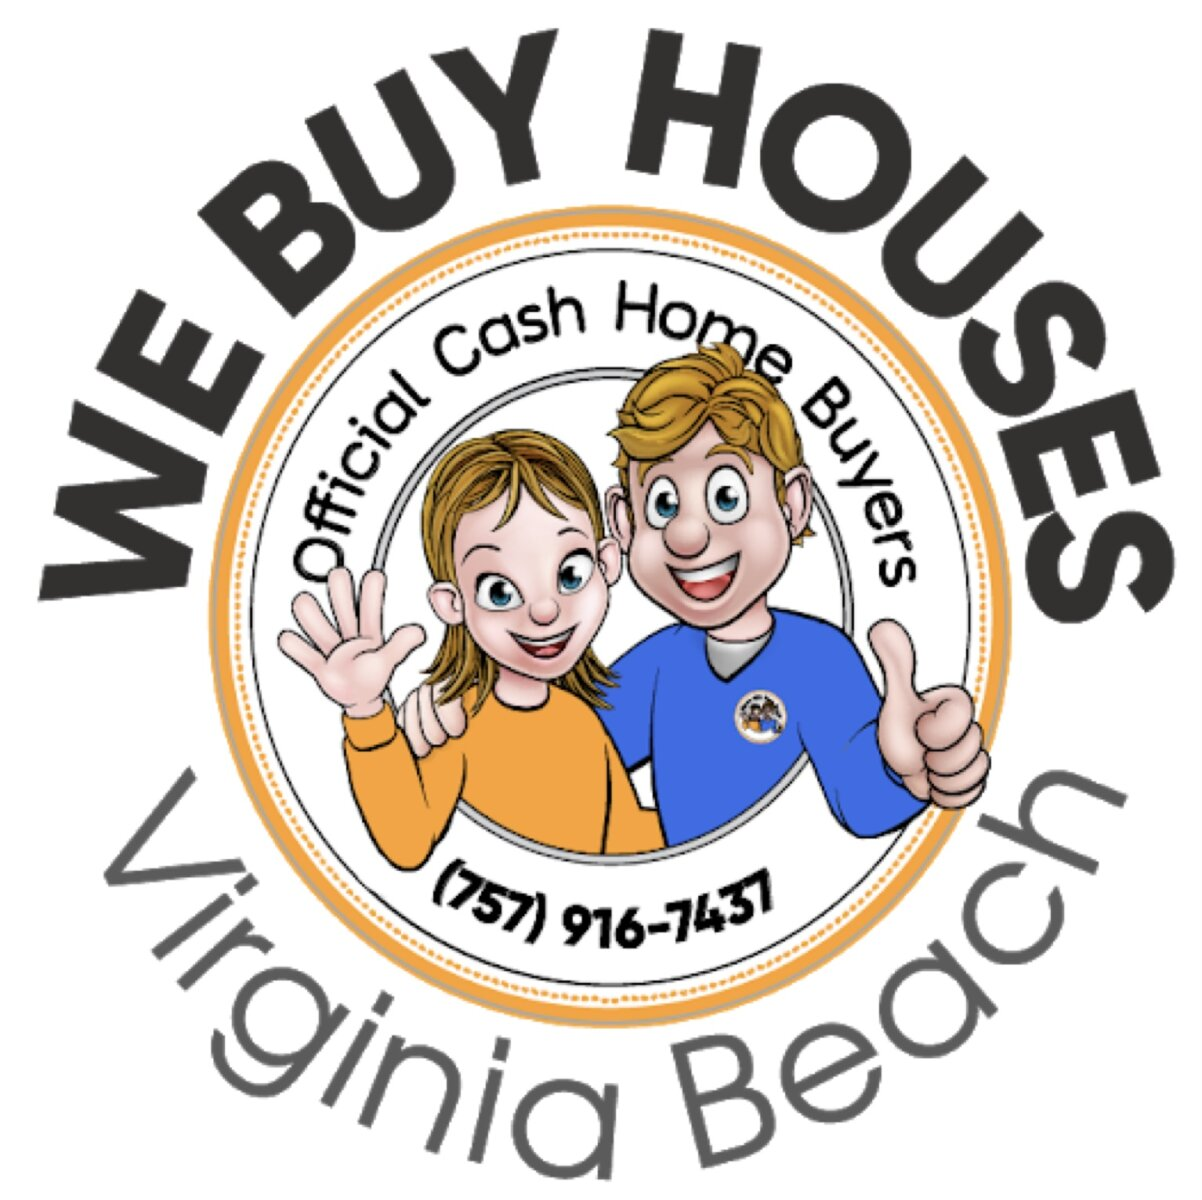 We Buy Houses Virginia Beach logo